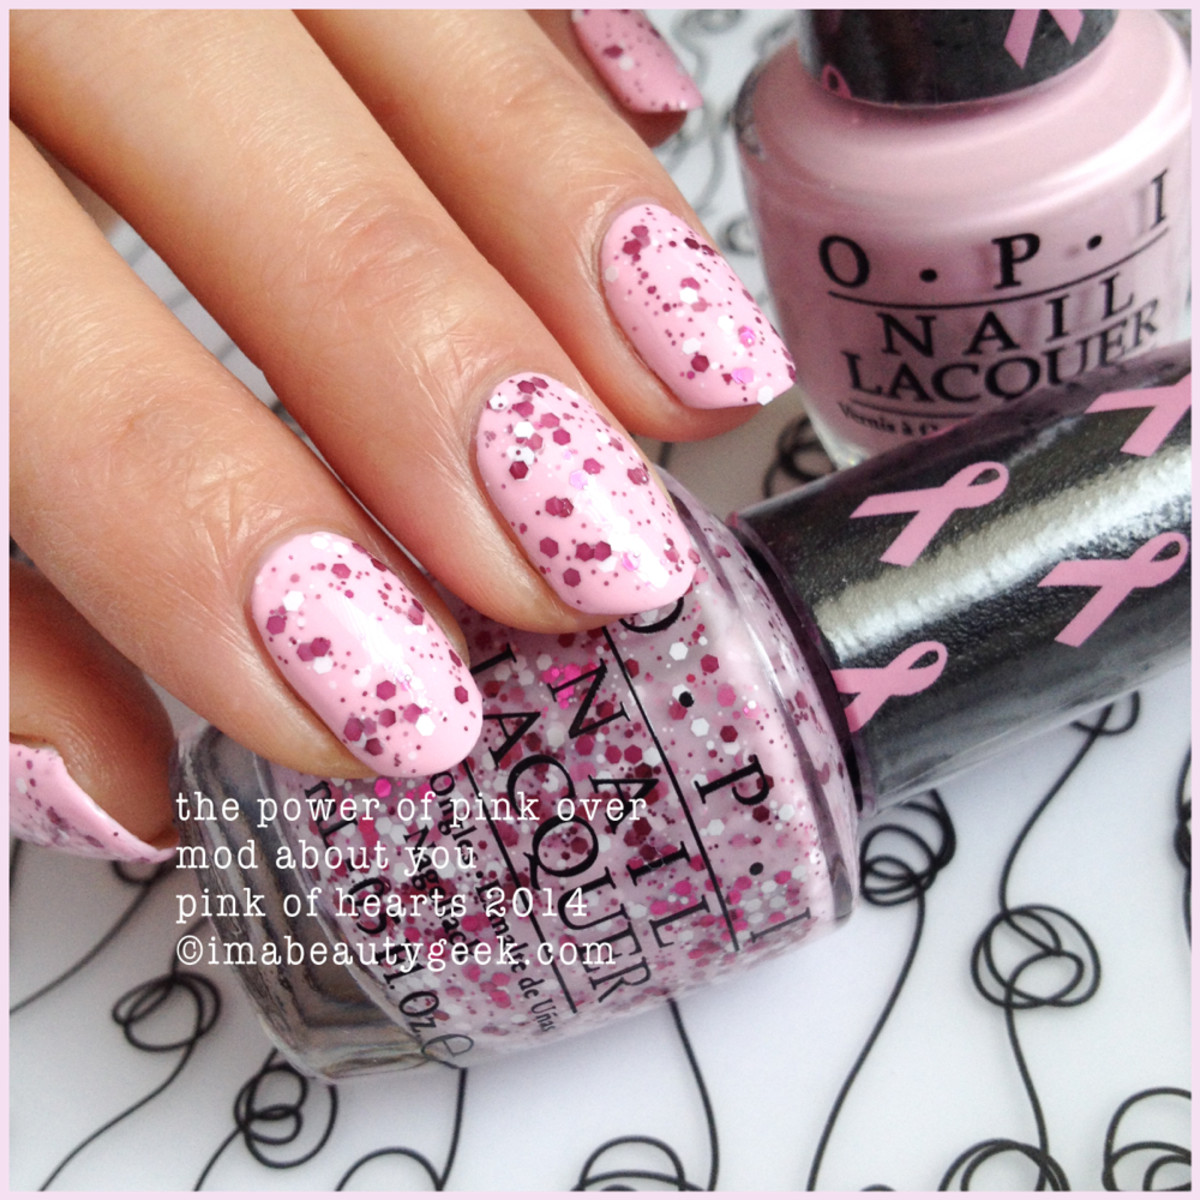 OPI The Power of Pink over OPI Mod About You Pink of Hearts 2014